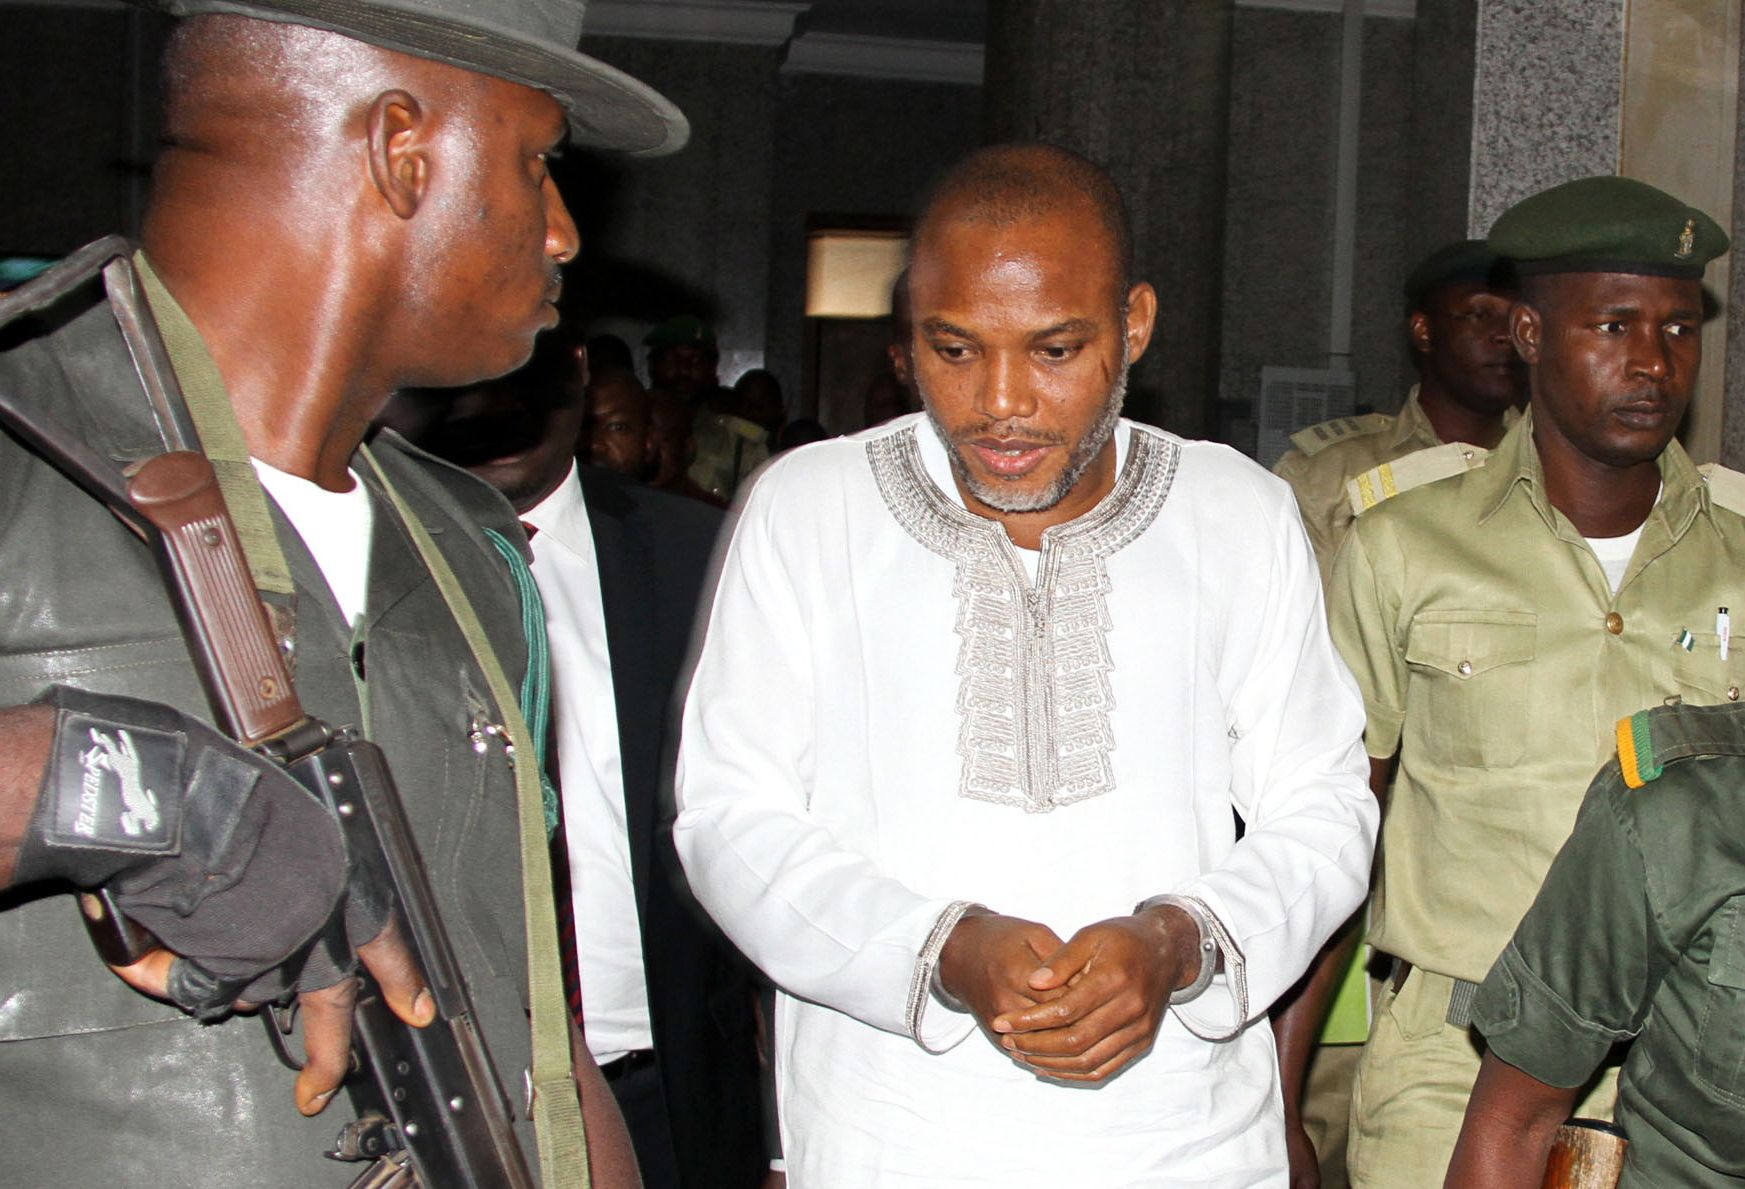 Biafra activist Nnamdi Kanu attends his trial in Abuja.